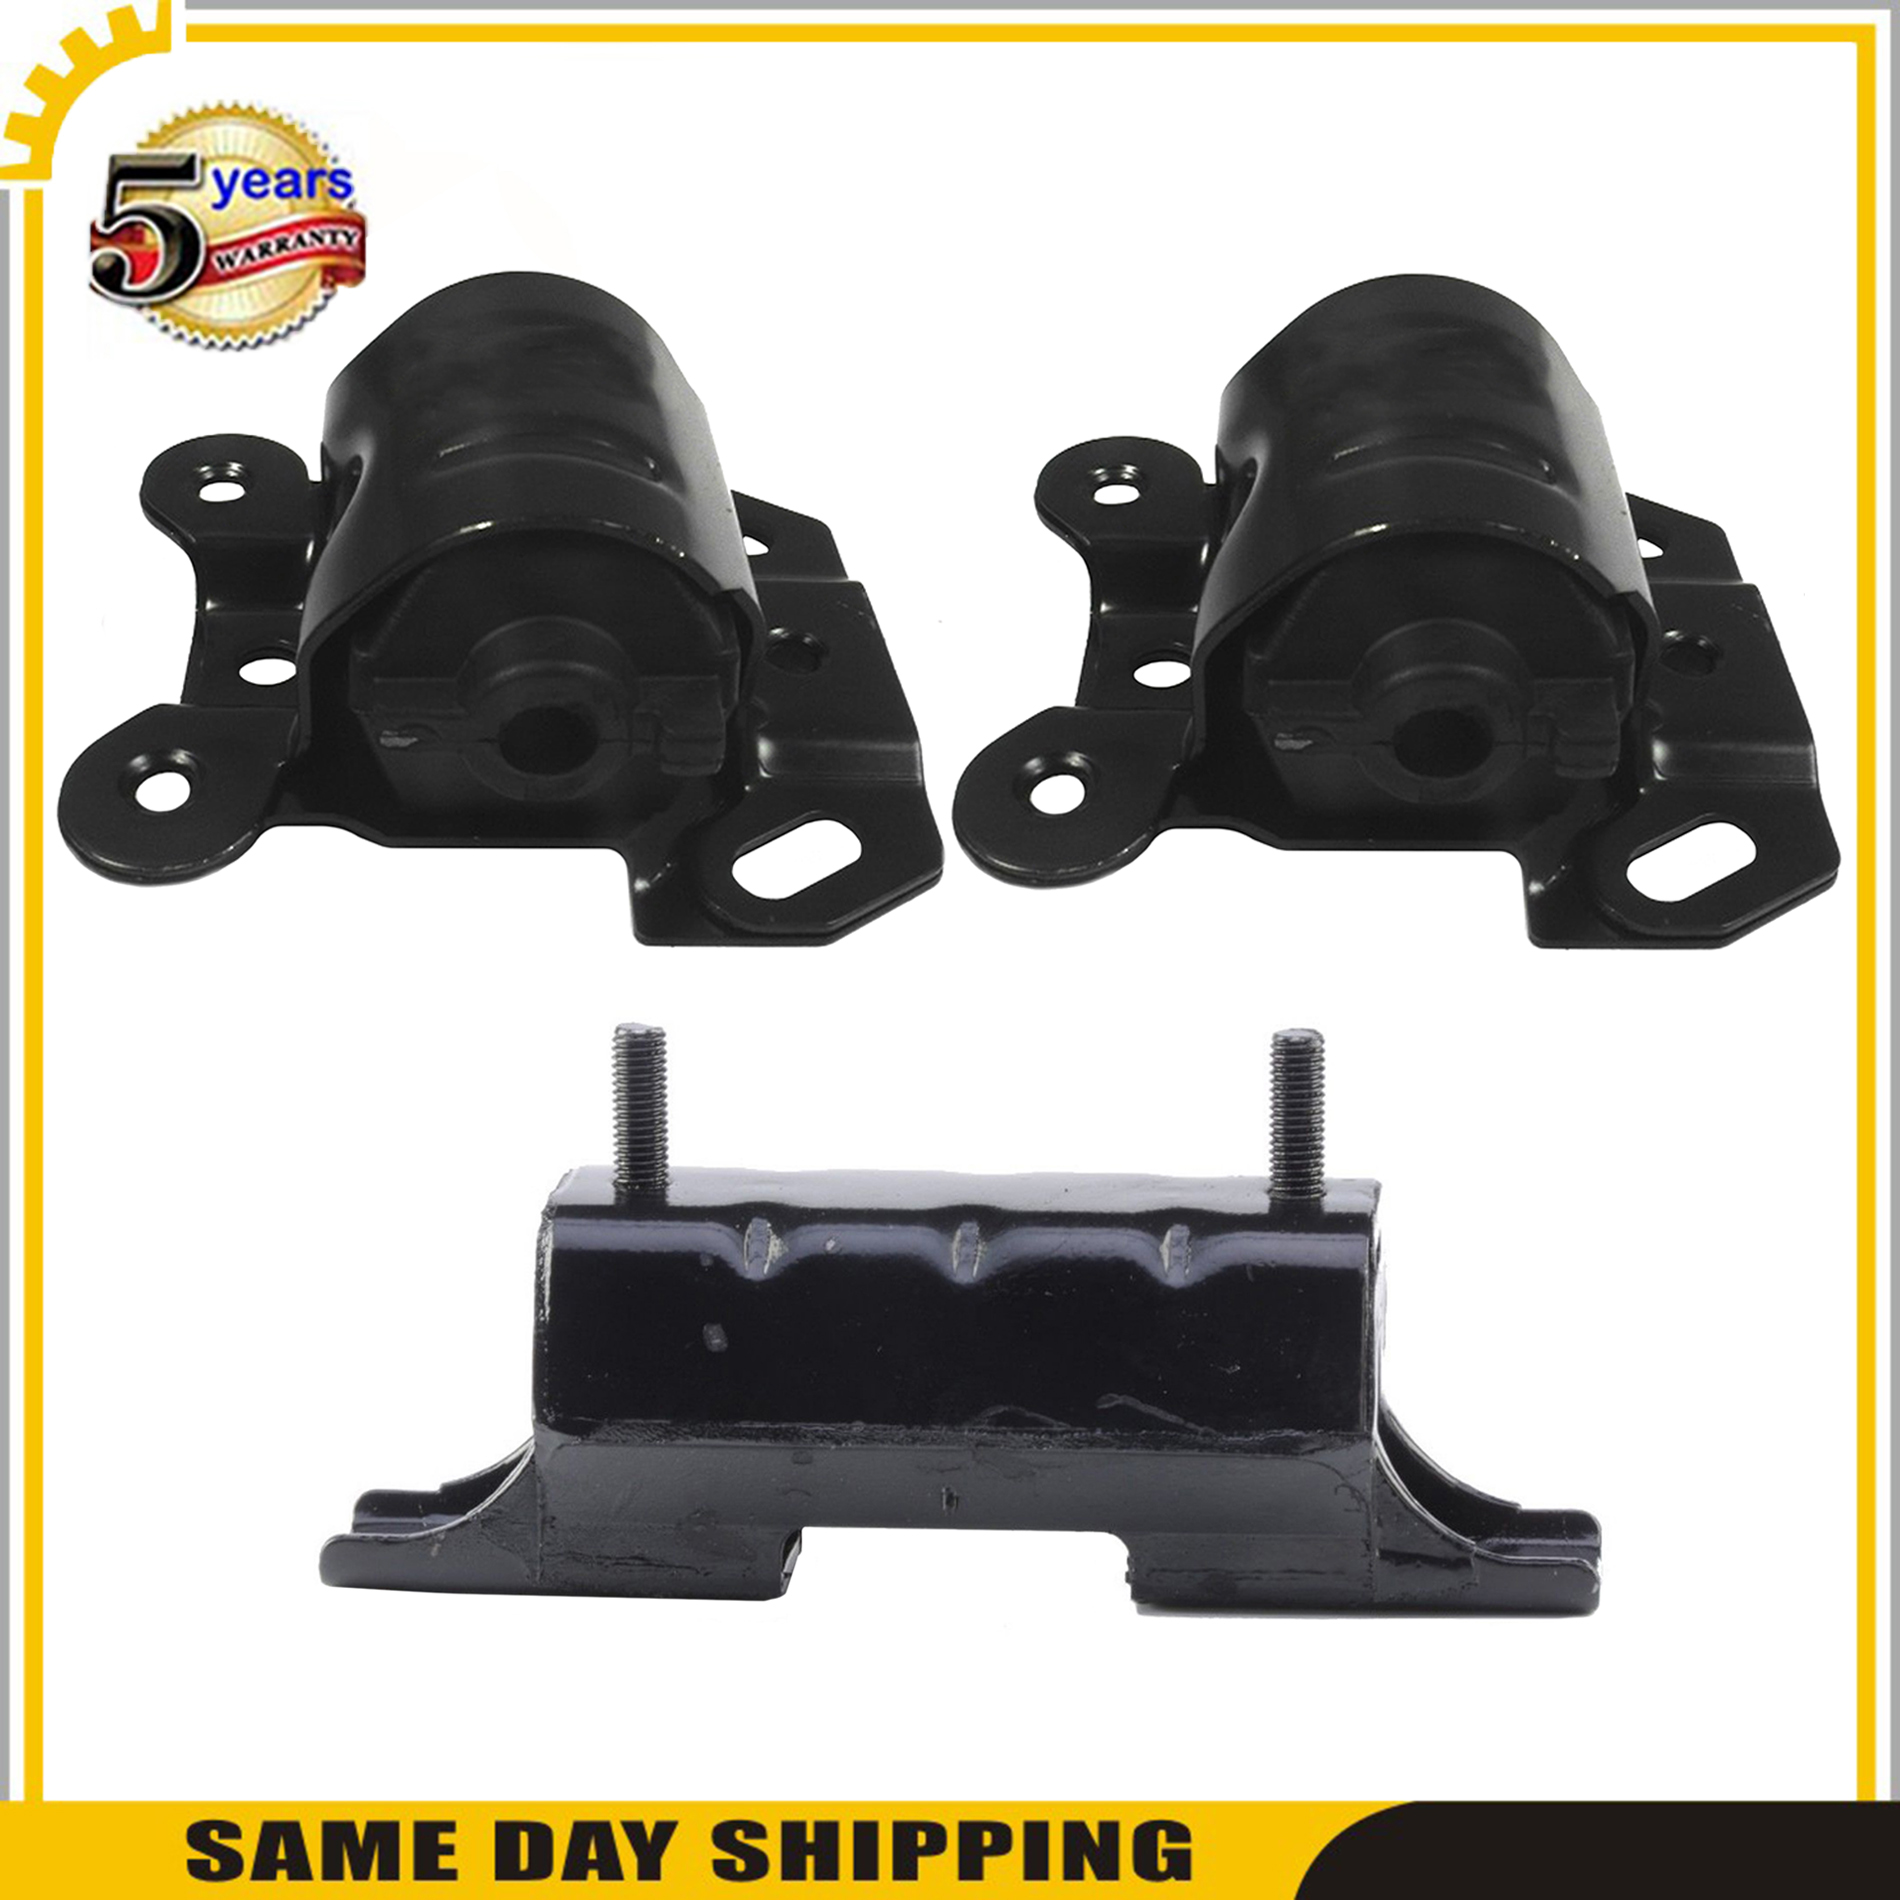 Set of 3pcs Engine Motor /& Trans Mount For Chevy Astro GMC Safari 4.3L 4WD 96-05